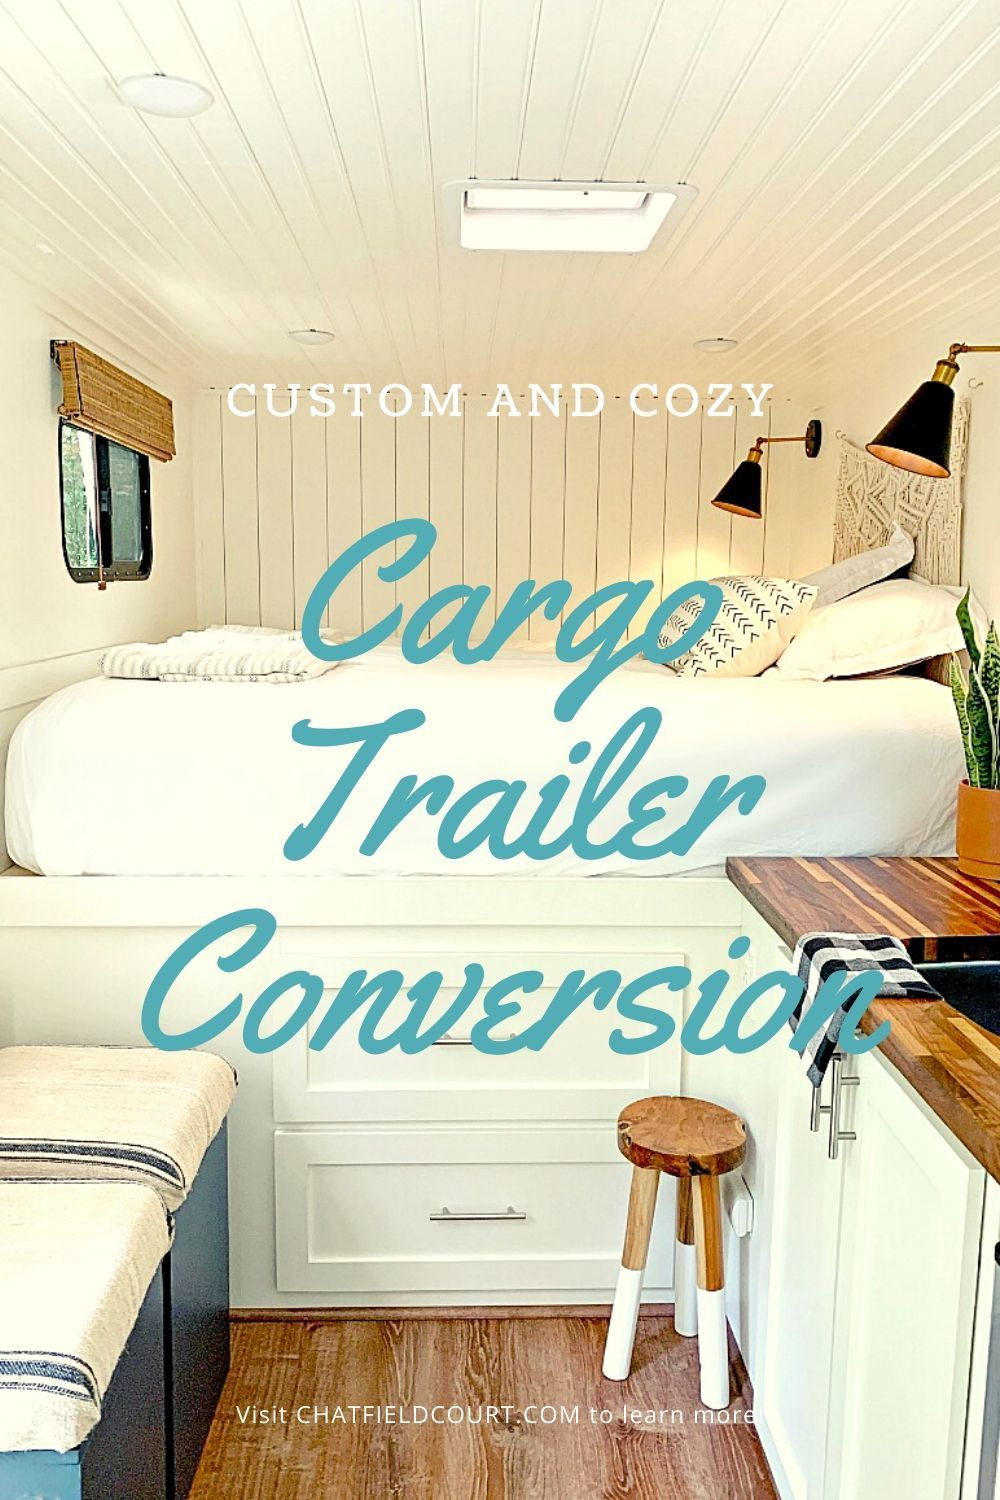 A cargo trailer conversion of a 7x16 trailer. It took 18 months to completely build a custom trailer and turn it into a comfortable and cozy RV fit for glamping and camping adventures.